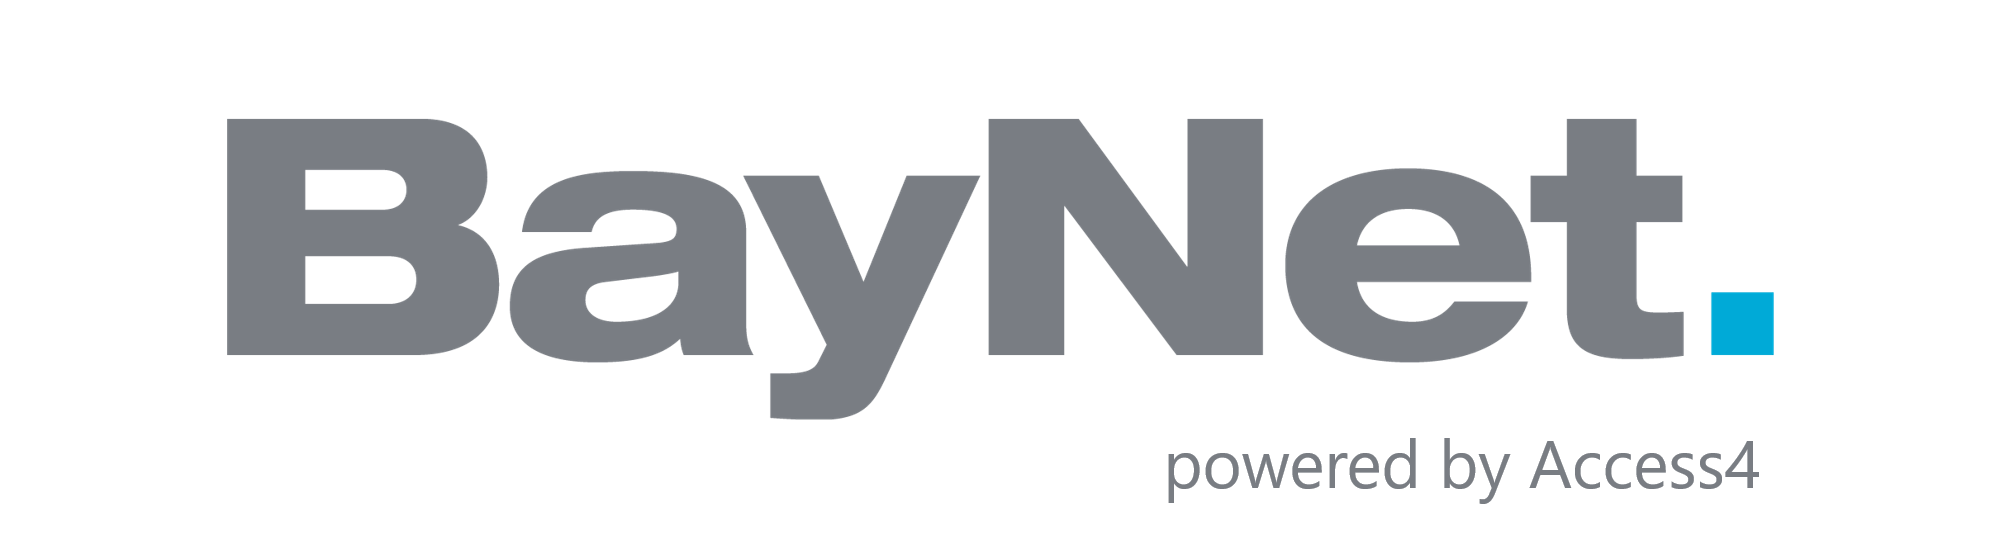 BayNet – powered by Access4